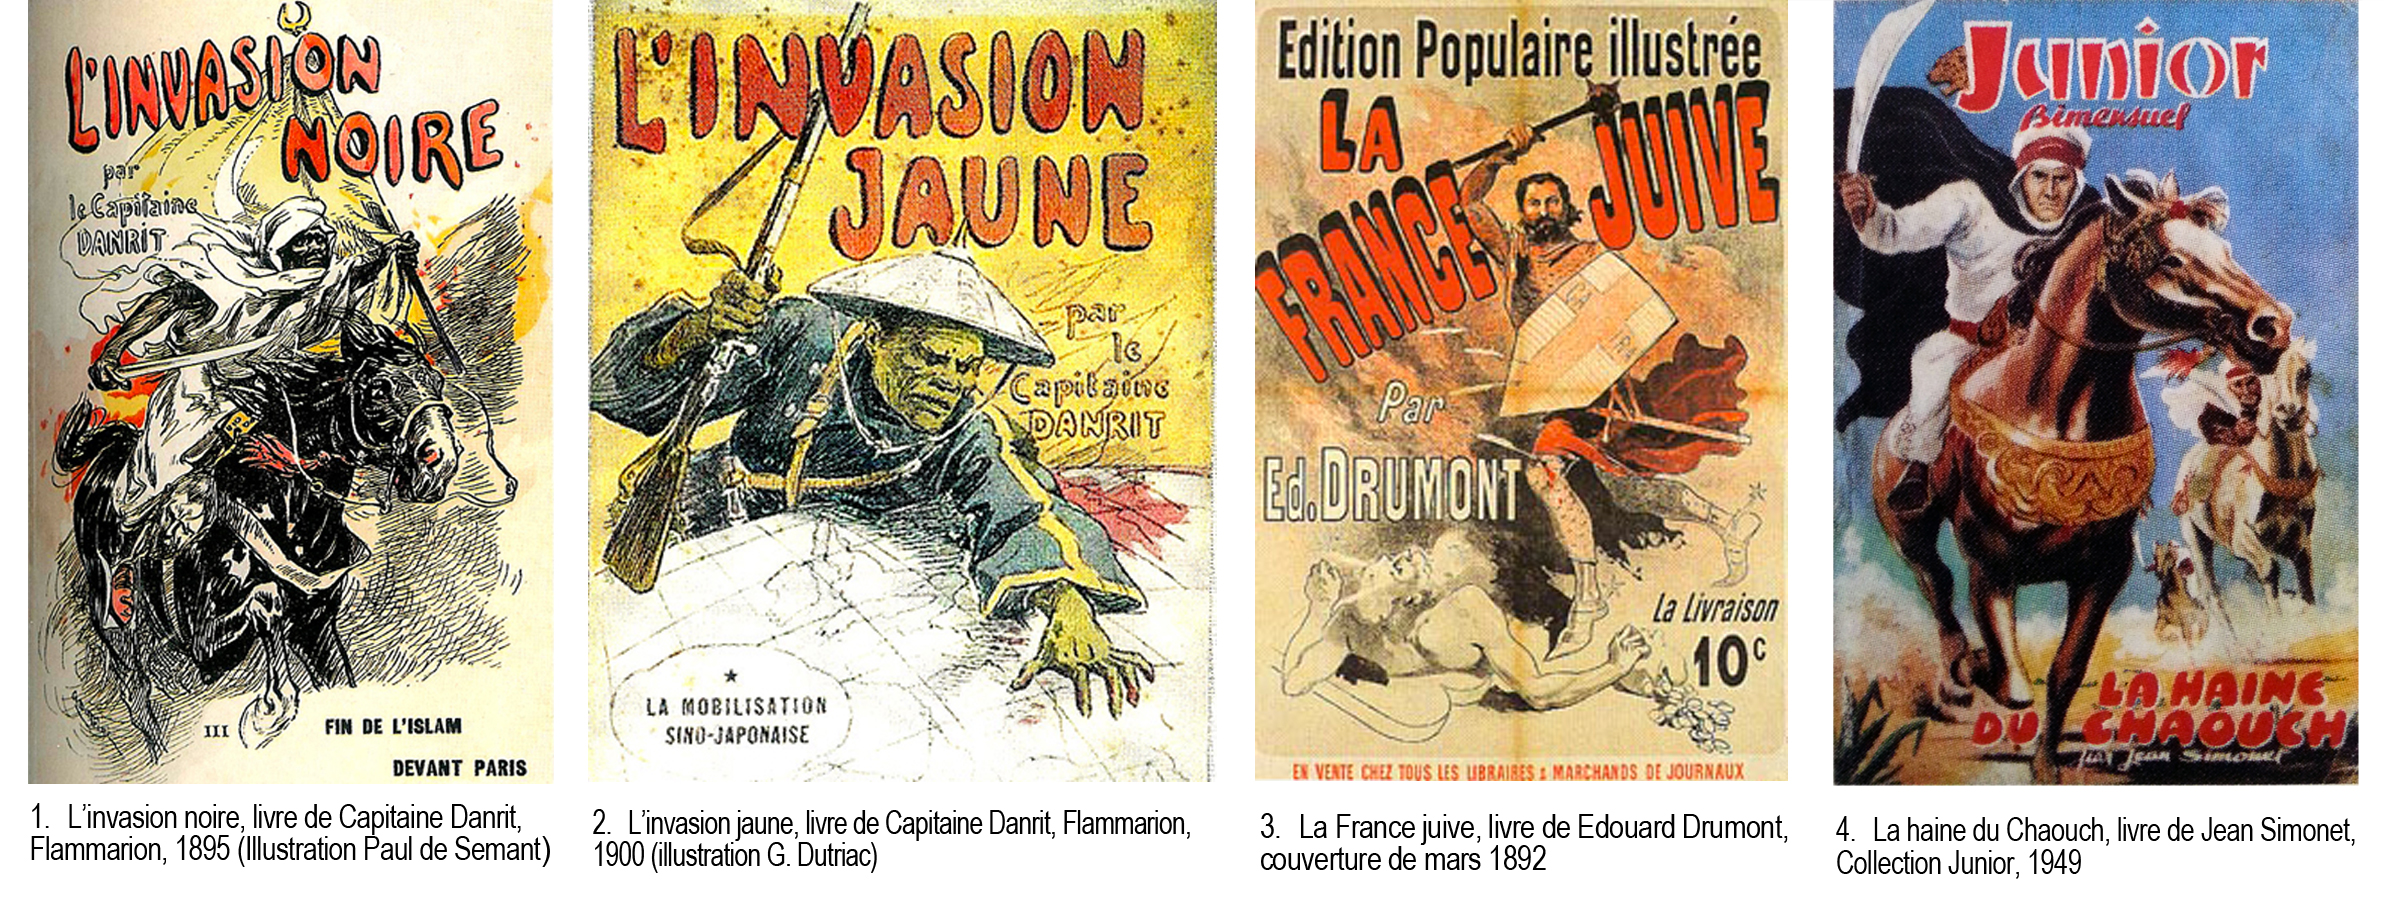 images-invasions-pour-web.jpg